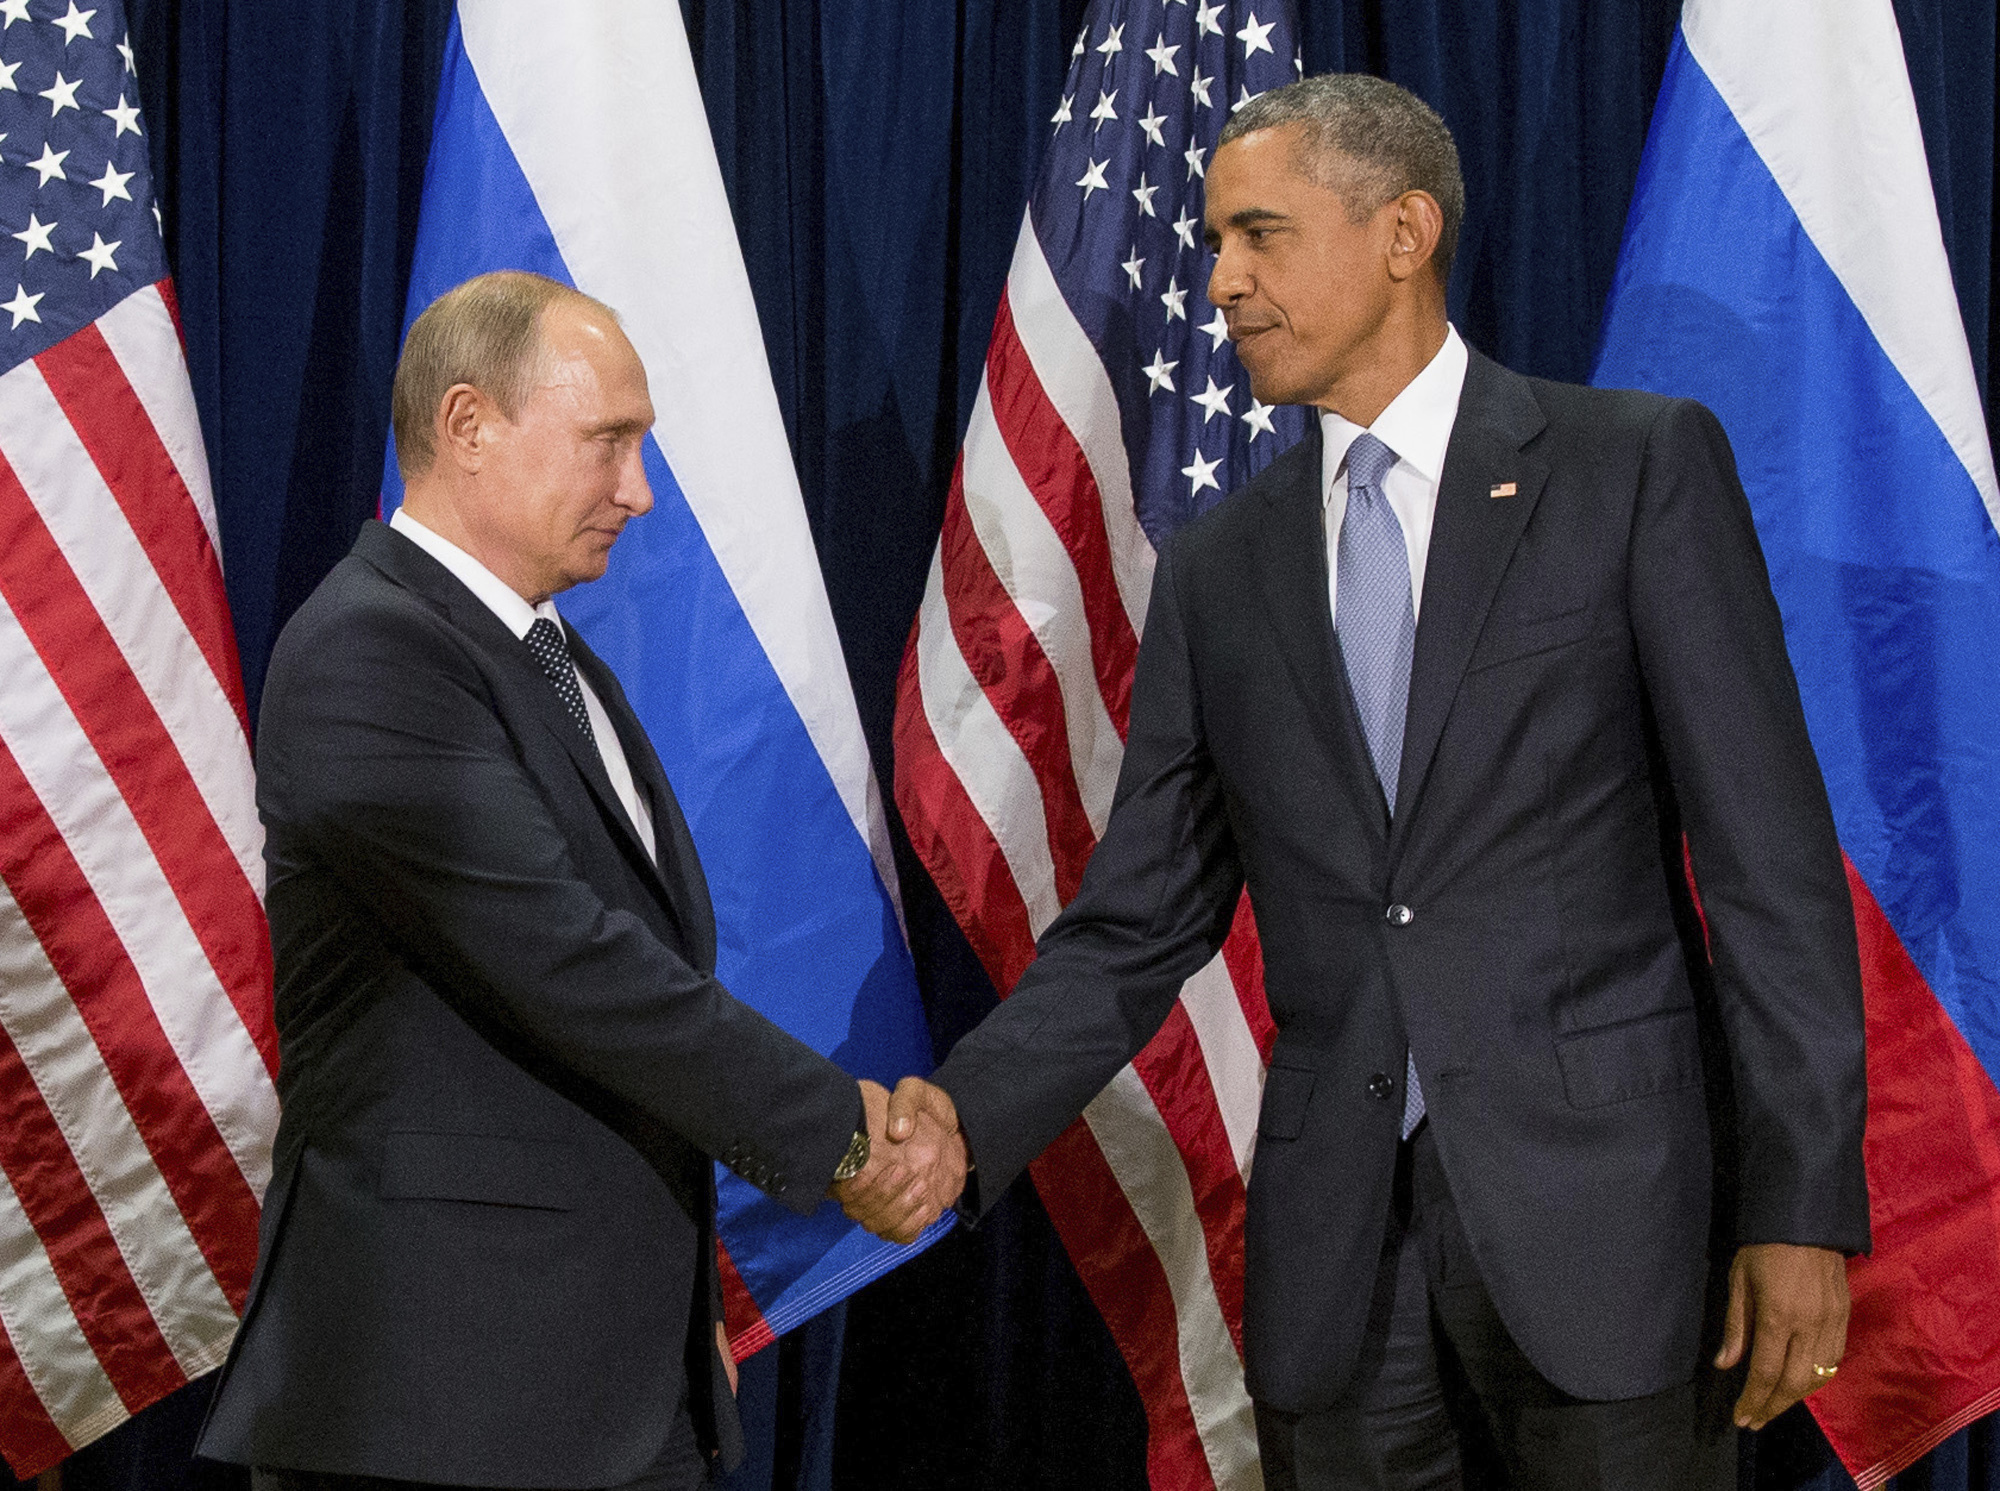 In this Sept. 28, 2015 file photo, President Barack Obama shakes hands with Russian President President Vladimir Putin before a bilateral meeting at United Nations headquarters.